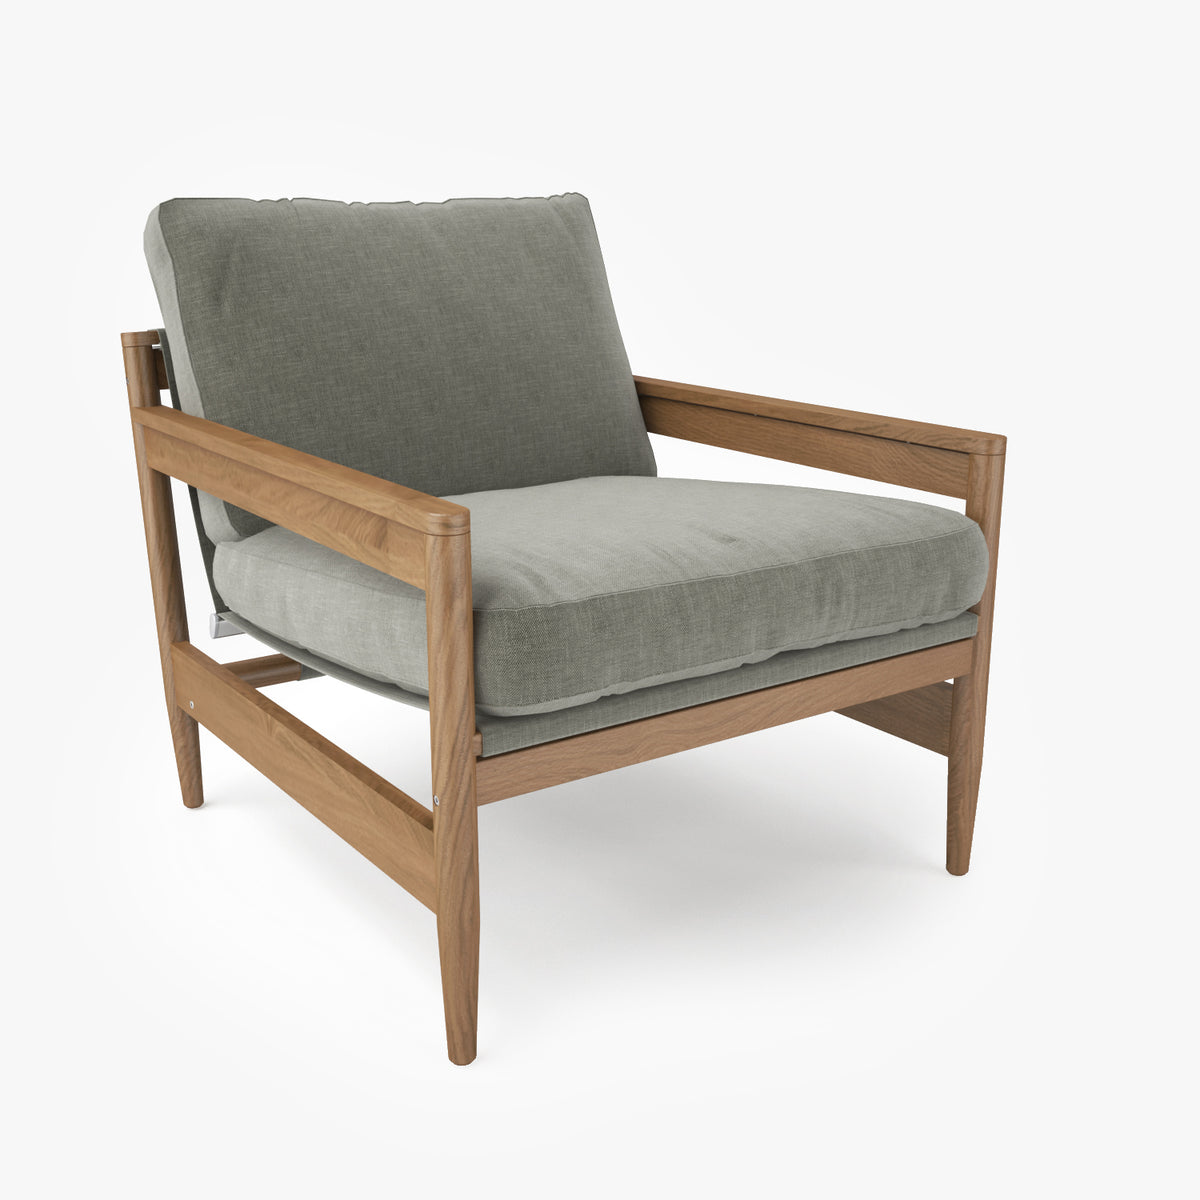 Roda ROAD 141 Sofa Chair 3D Model